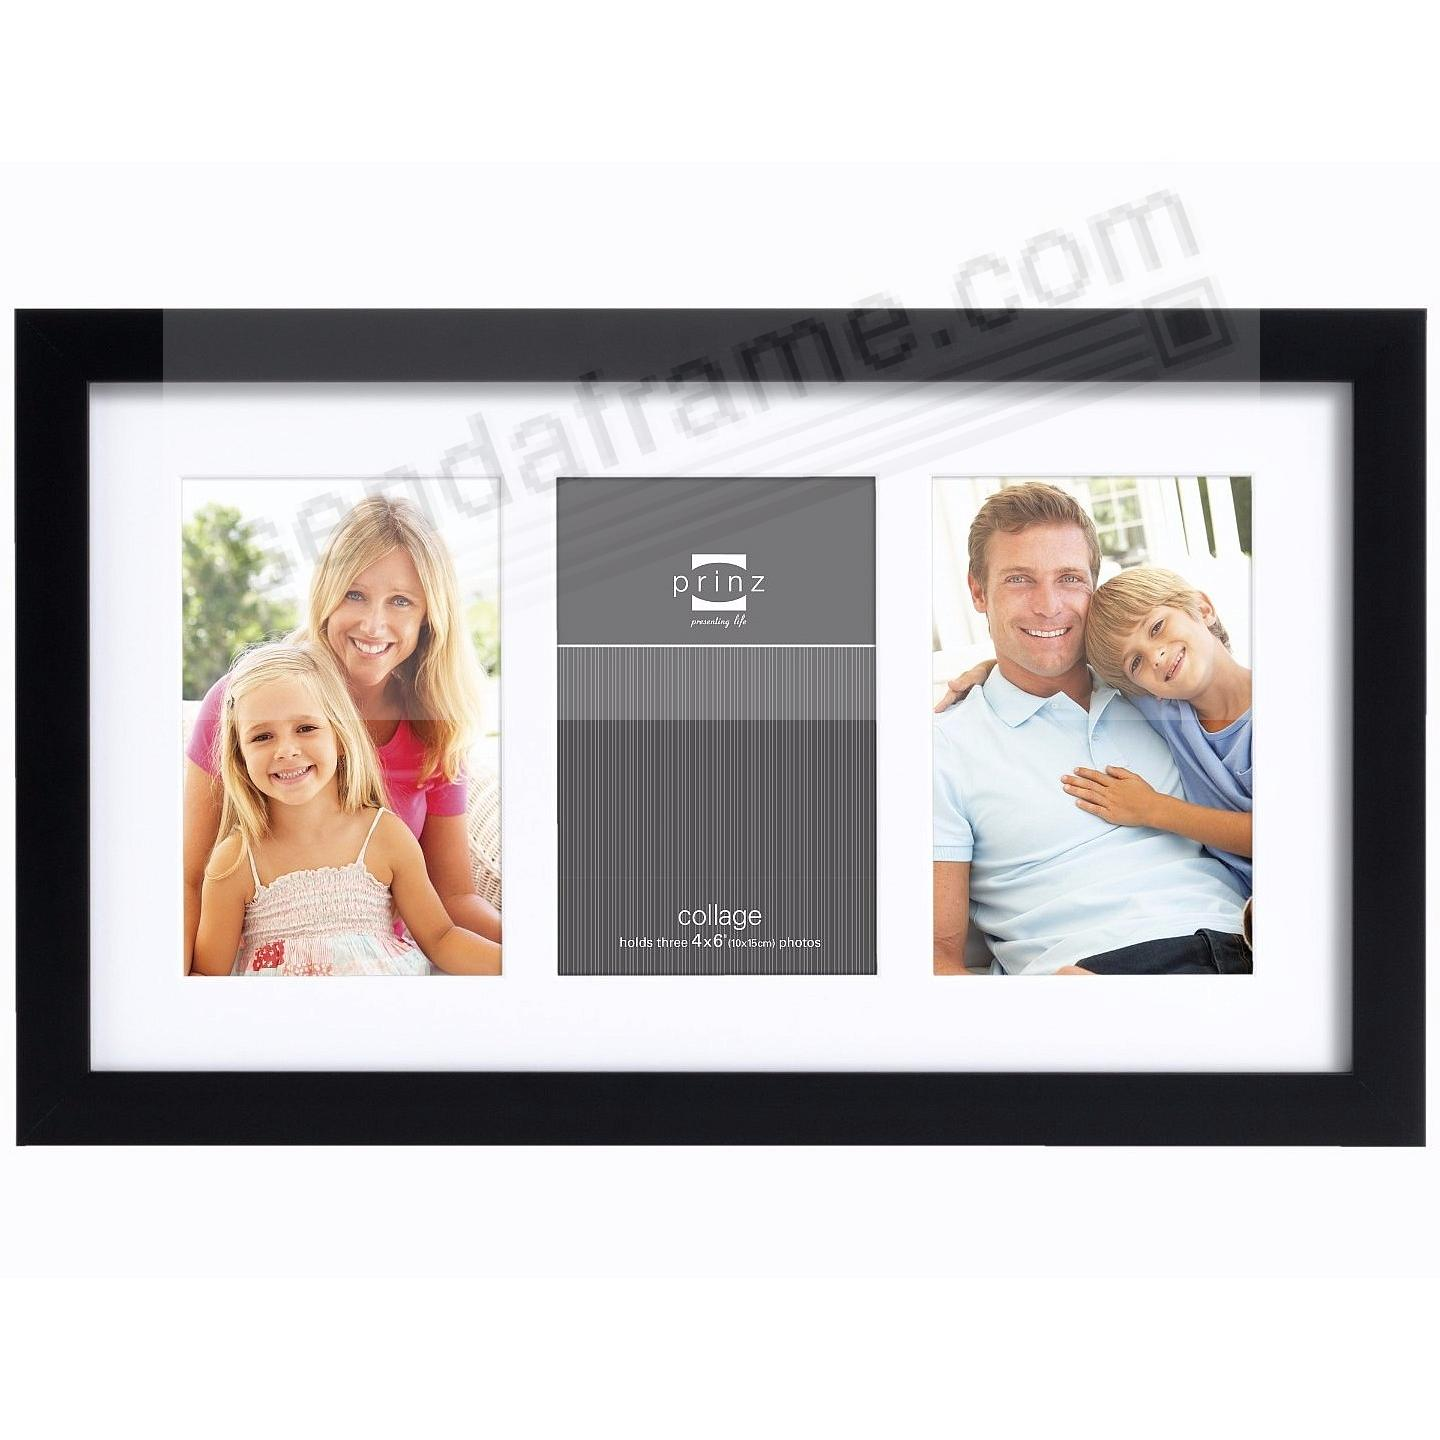 Matted black polystyrene collage frame for 3 - 4x6 prints by Prinz ...